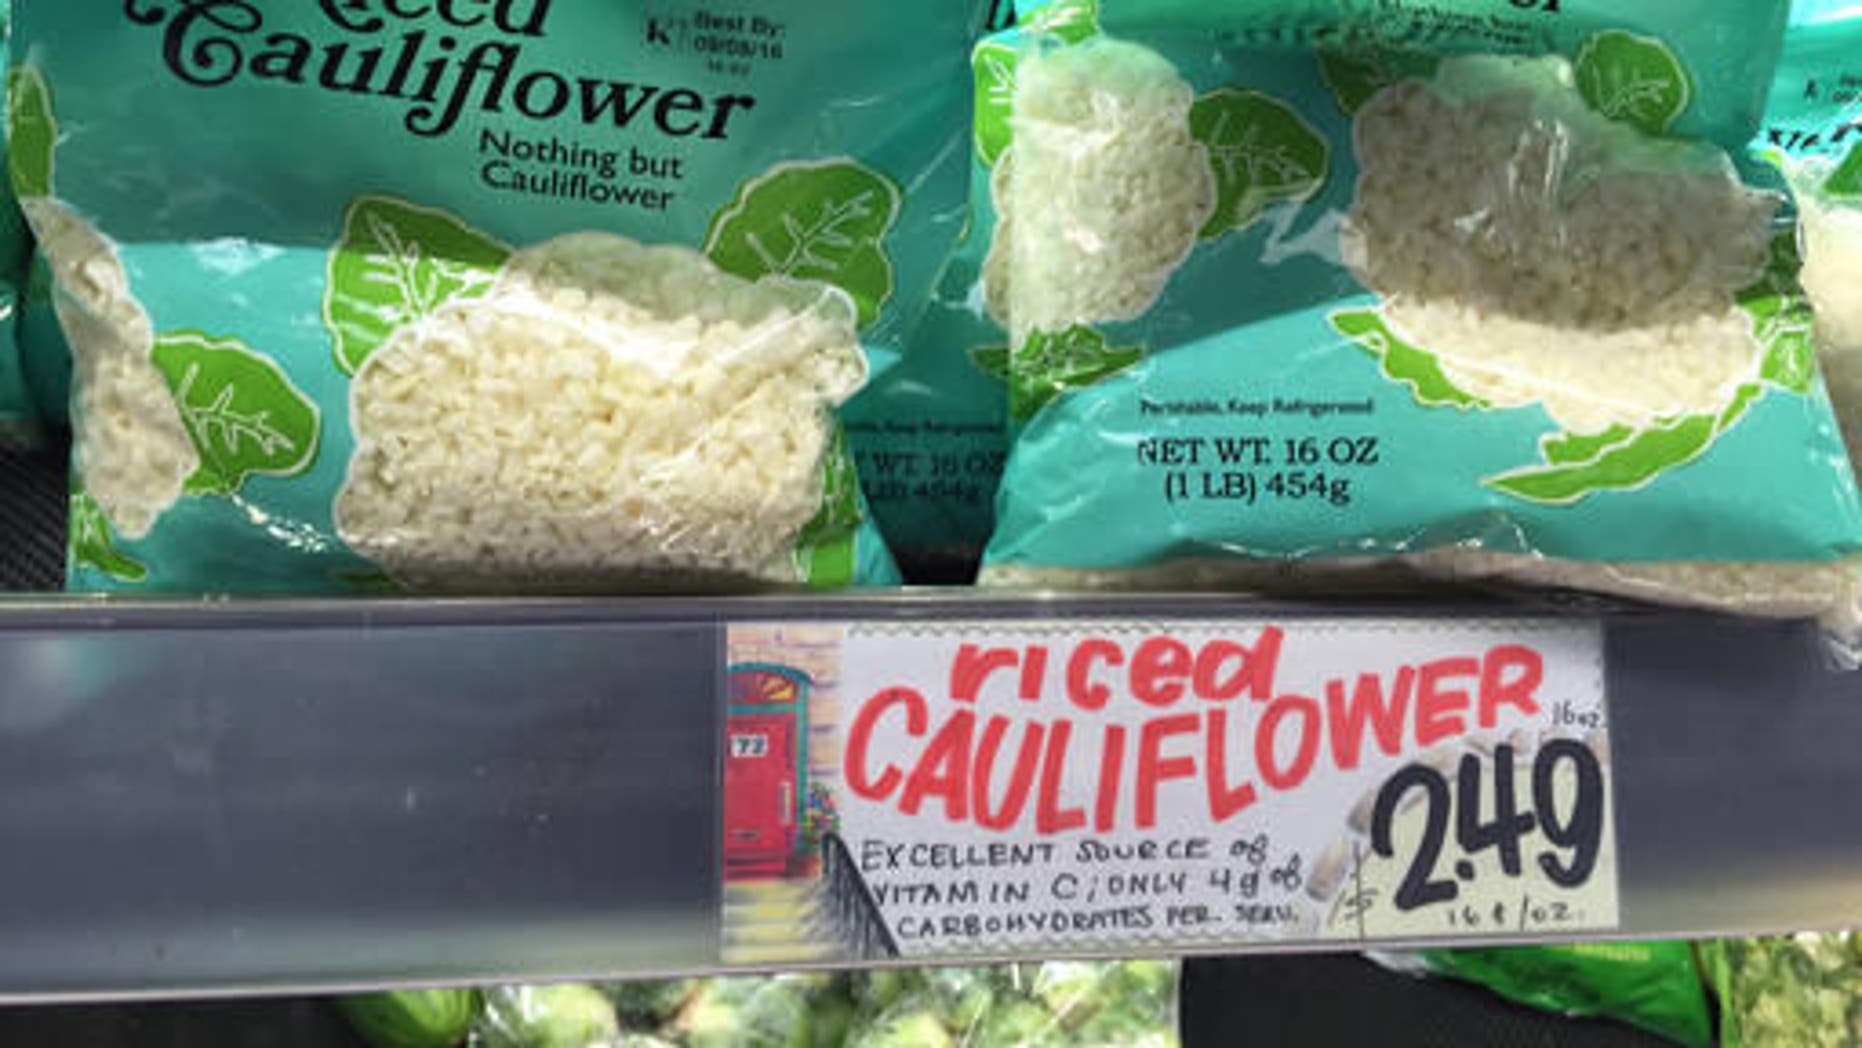 """""""Riced Cauliflower"""" for sale at a Trader Joe's in New York. Using cauliflower instead of rice or potatoes has become popular among low-carb and paleo diet devotees. Trader Joe's began selling frozen """"Riced Cauliflower"""" last year and a fresh version this year"""